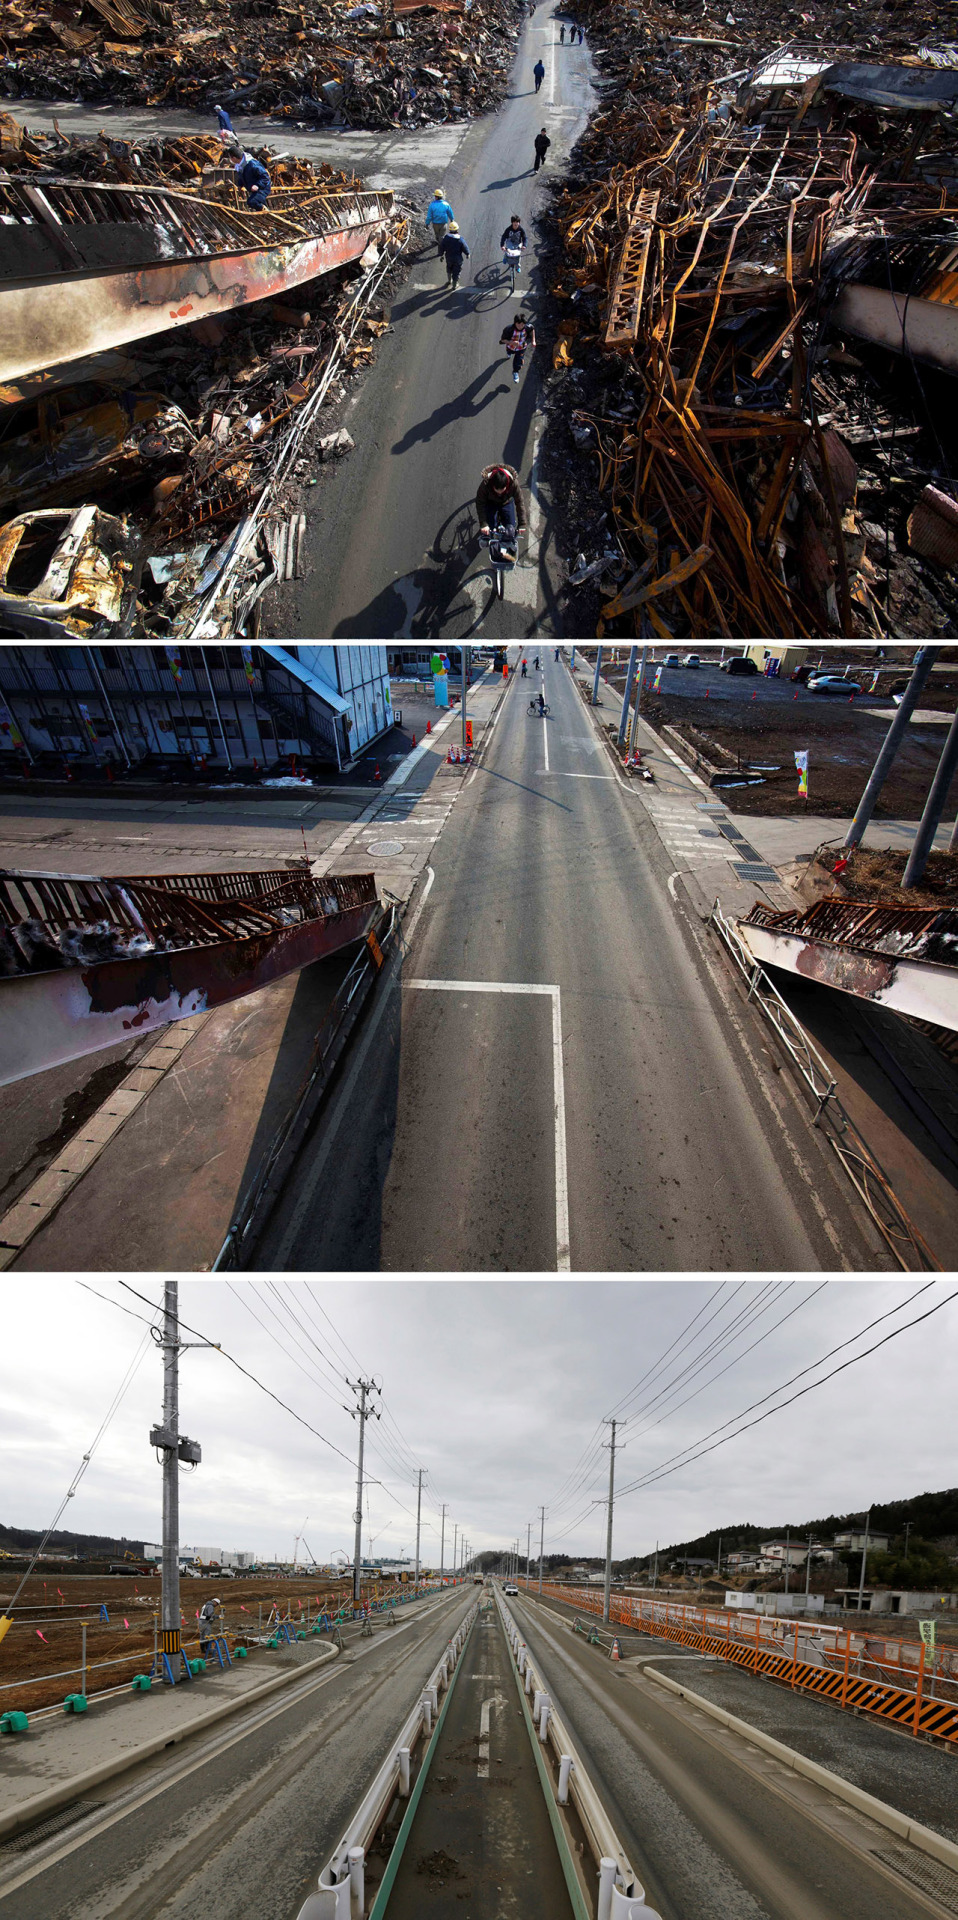 In this combination photo, Japanese residents of Kesennuma, northeastern Japan, pass through a road that was cleared by bulldozer through the ruins of the city on March 17, 2011, six days after the tsunami, top, people cross the same street on Thursday, Feb. 23, 2012, center, and a worker, left, stands at a construction site on Monday, March 7, 2016. Five years after the disaster, construction work is clearly underway but far from done. Rebuilt roads stretch to the horizon between still largely vacant expanses. It is a massive undertaking to raise the ground level of entire neighborhoods, to better protect them from inundation, before rebuilding from scratch. (AP Photo/David Guttenfelder and Eugene Hoshiko)